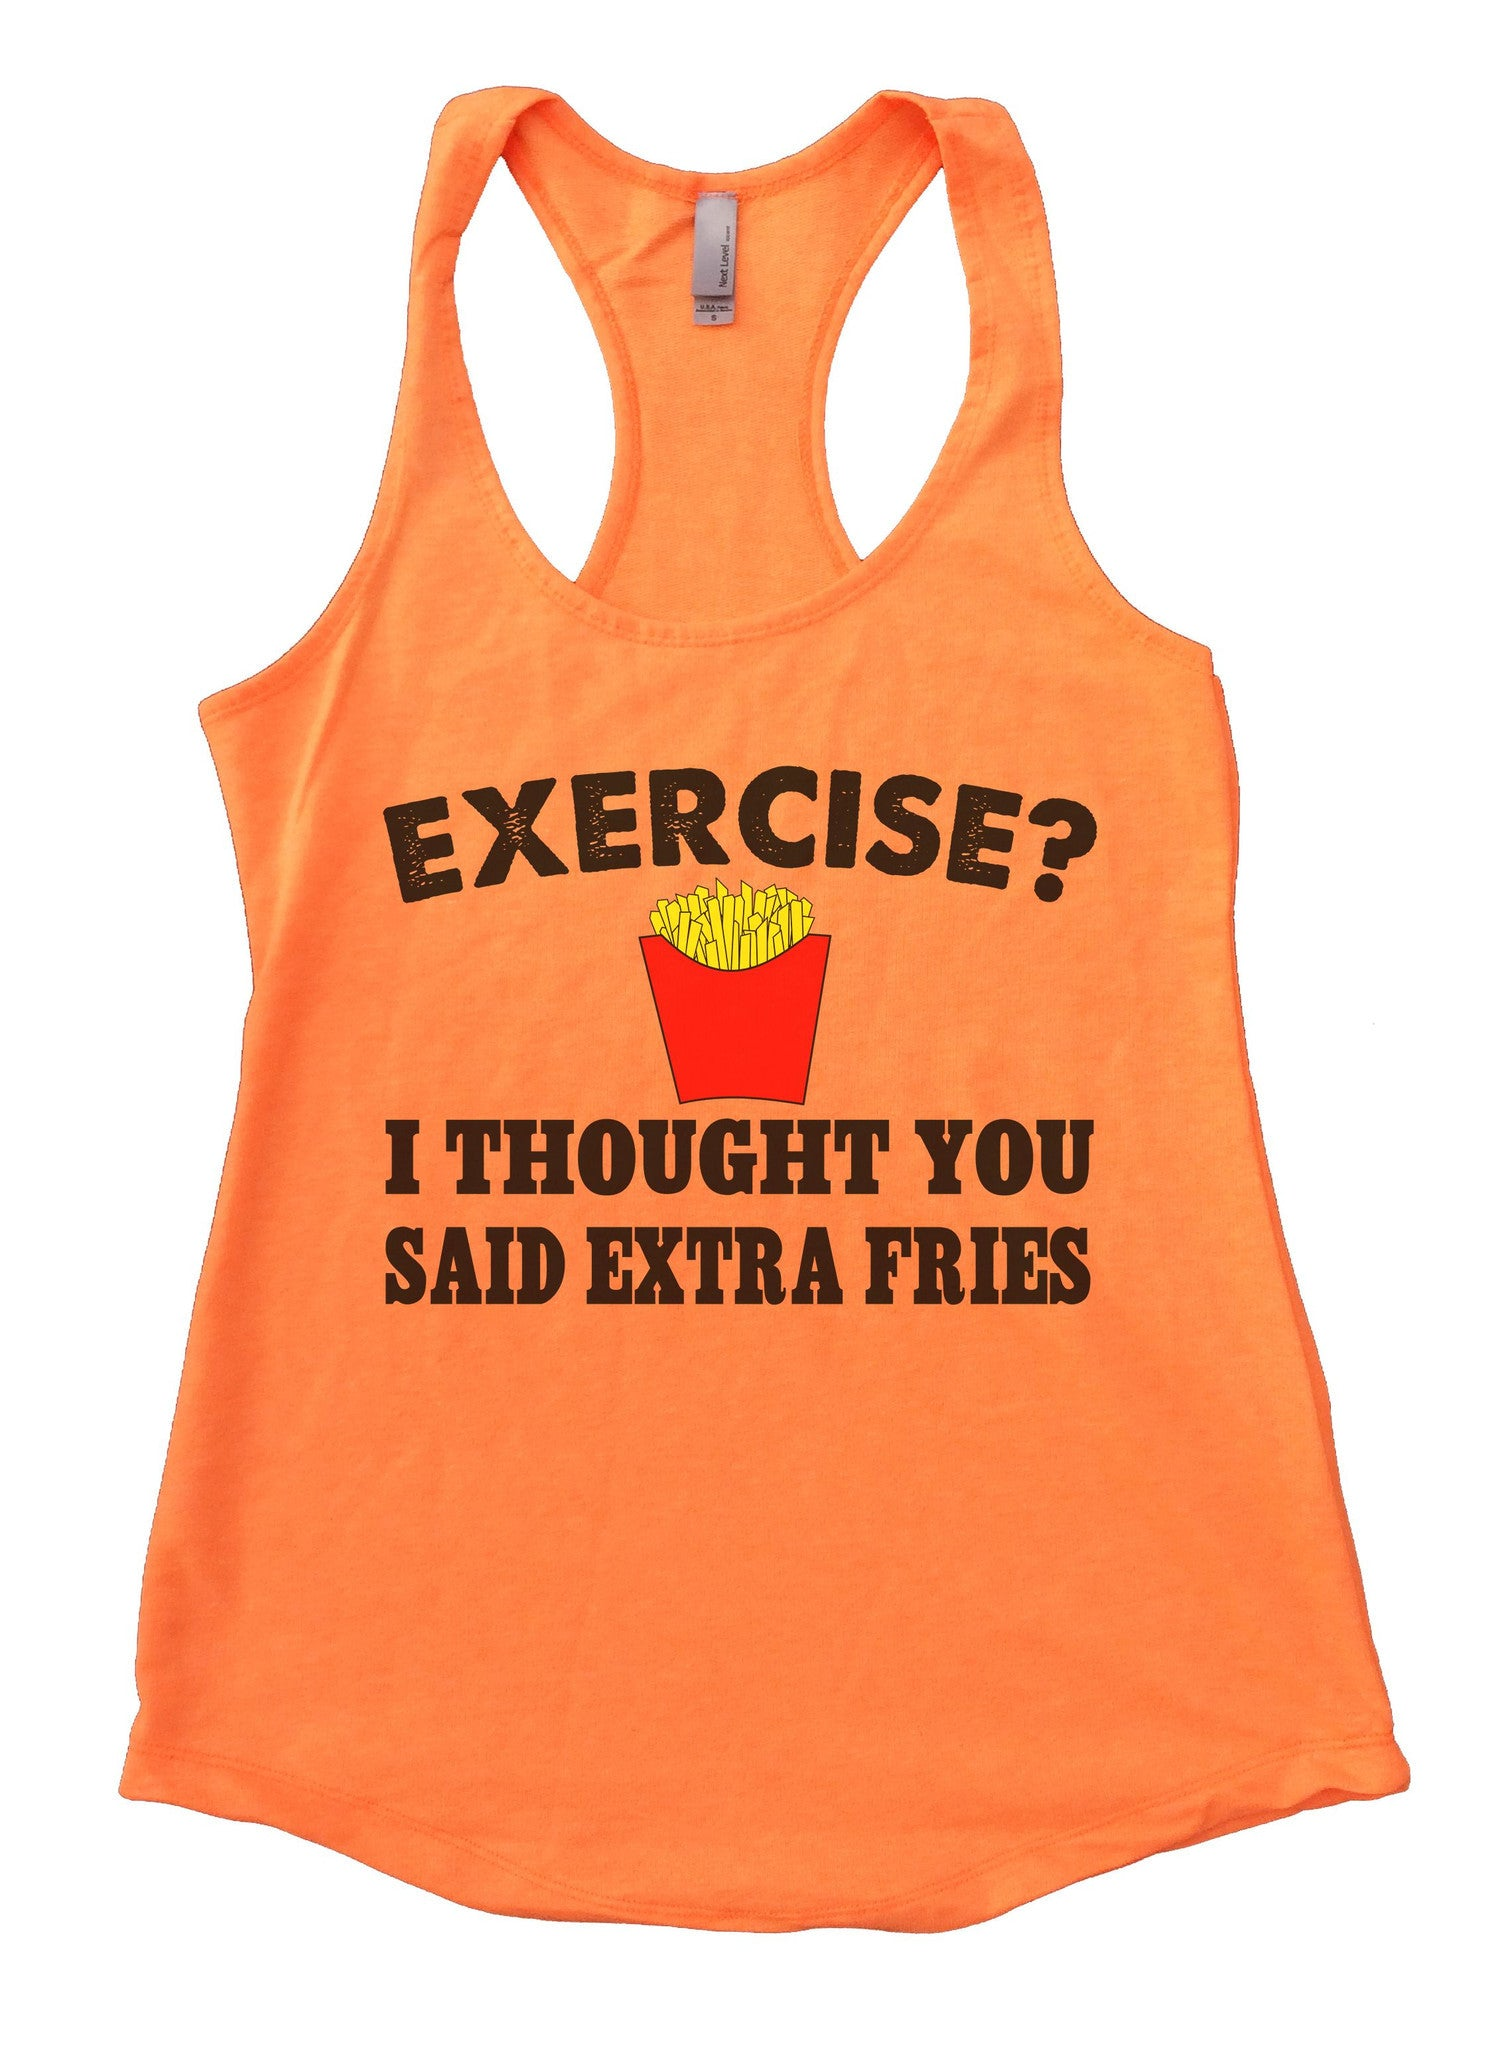 Exercise? I Thought You Said Extra Fries Womens Workout Tank Top FB32 - Funny Shirts Tank Tops Burnouts and Triblends  - 6